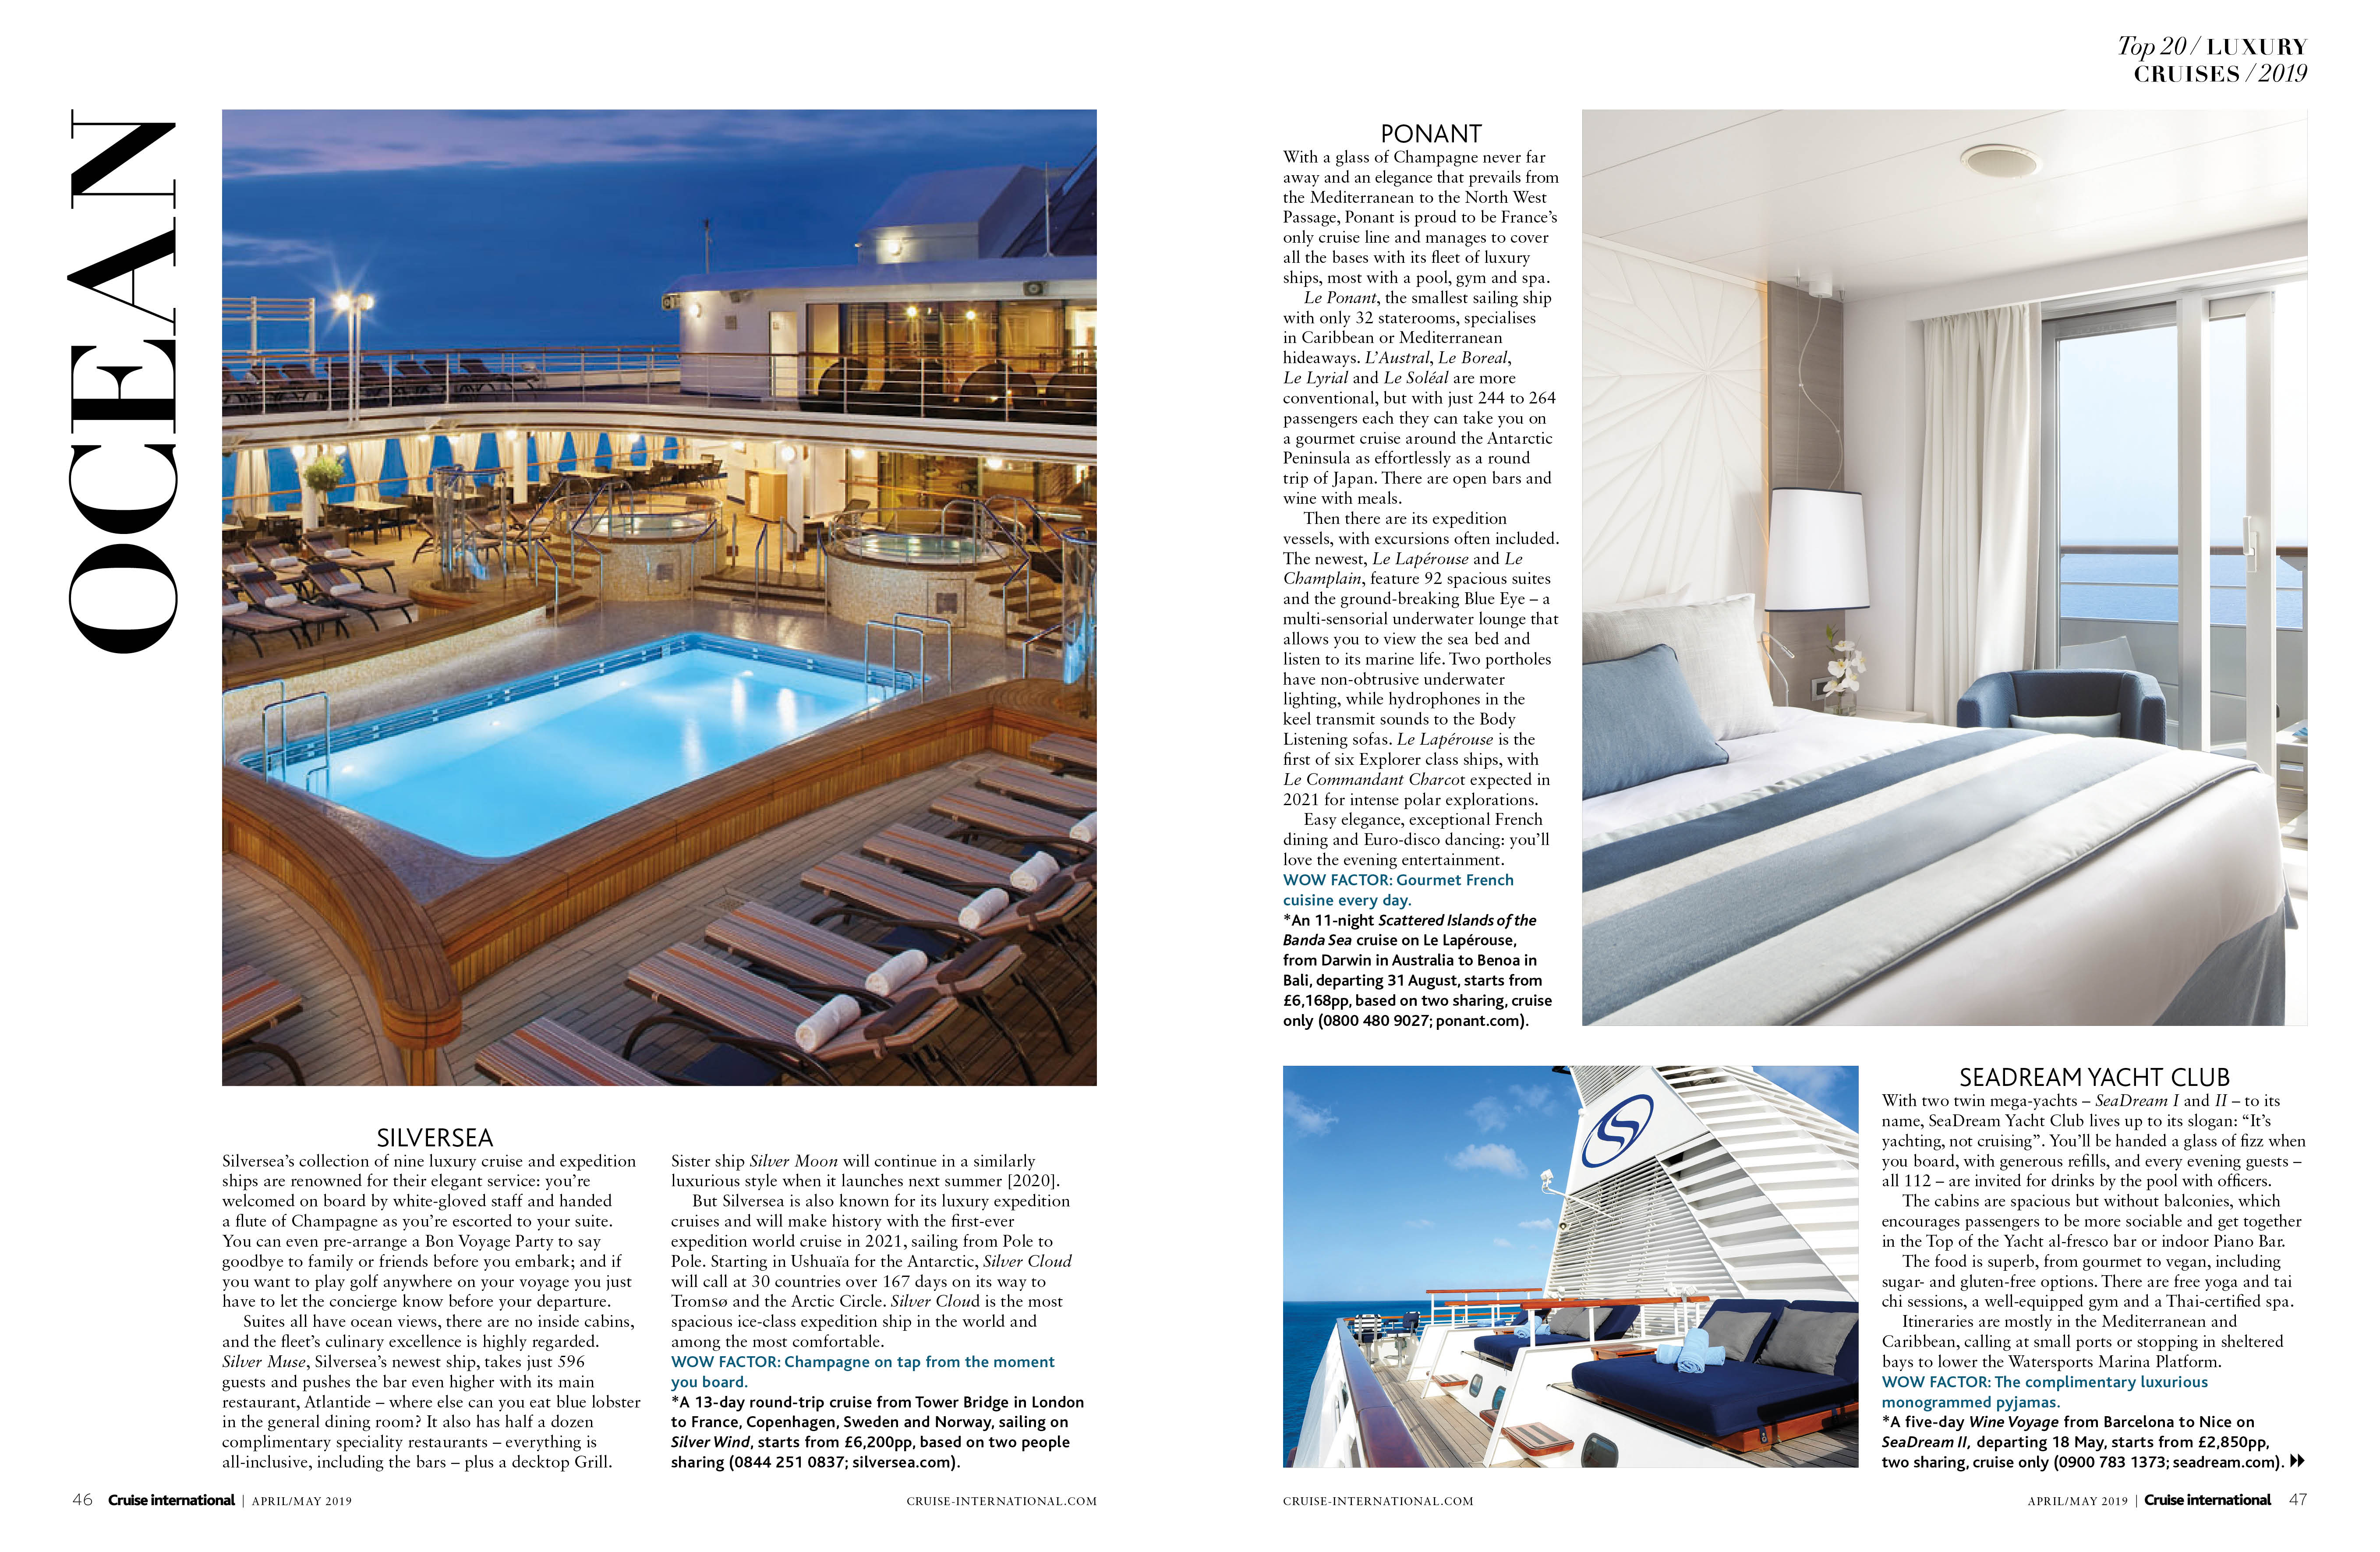 Luxury cruises in April May issue of Cruise International